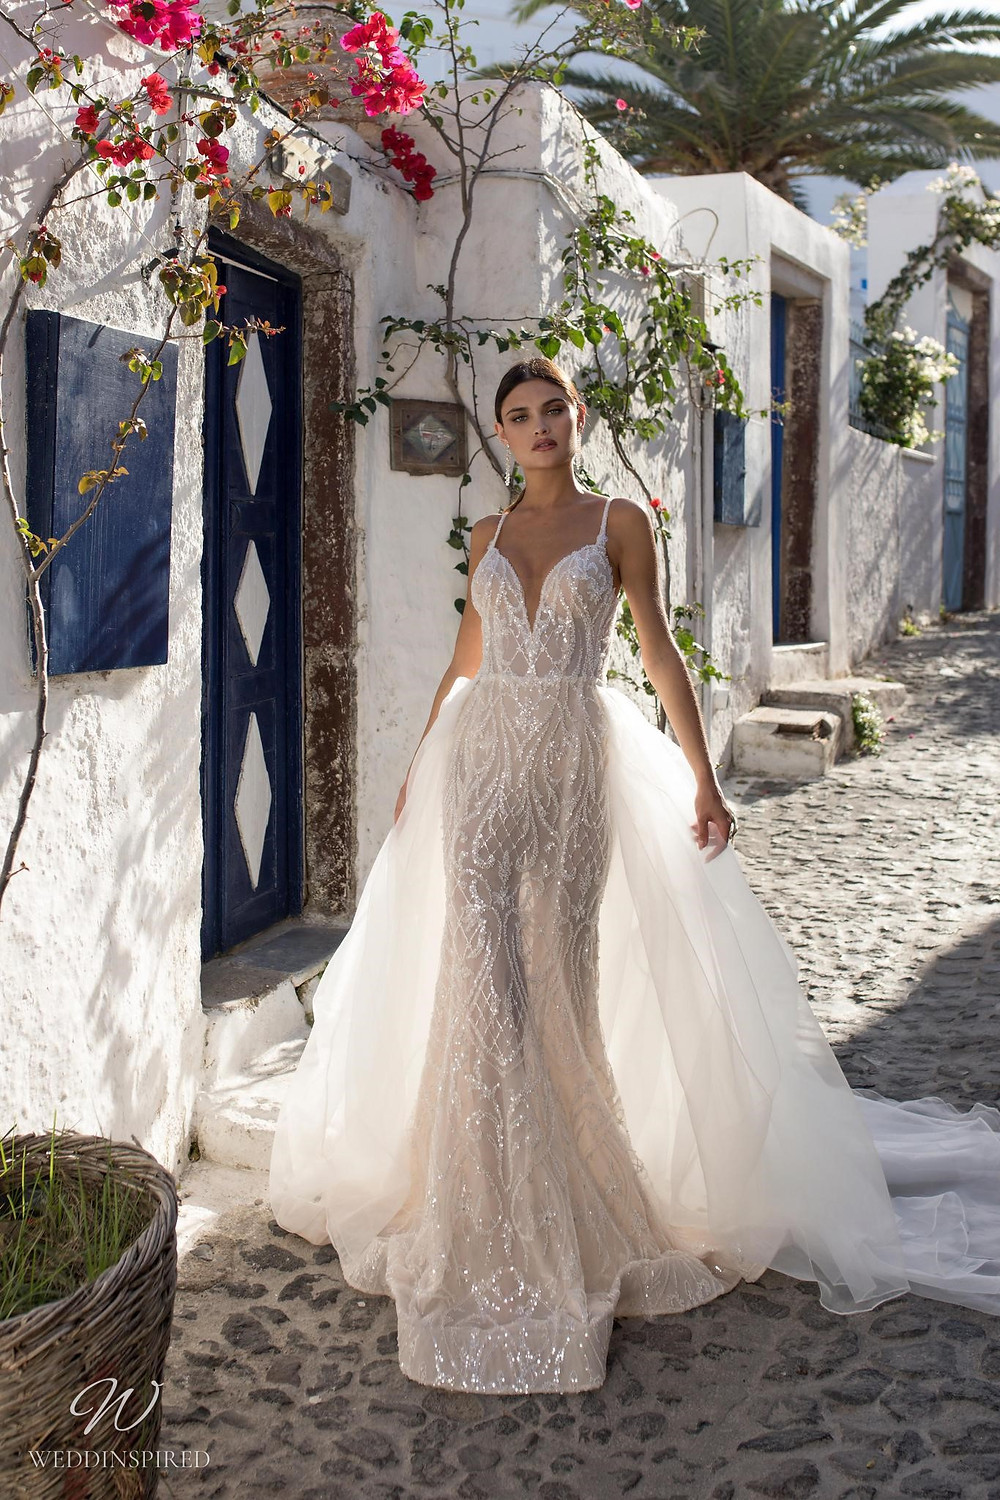 A Ricca Sposa sparkly mermaid wedding dress with a tulle detachable skirt, straps and crystals